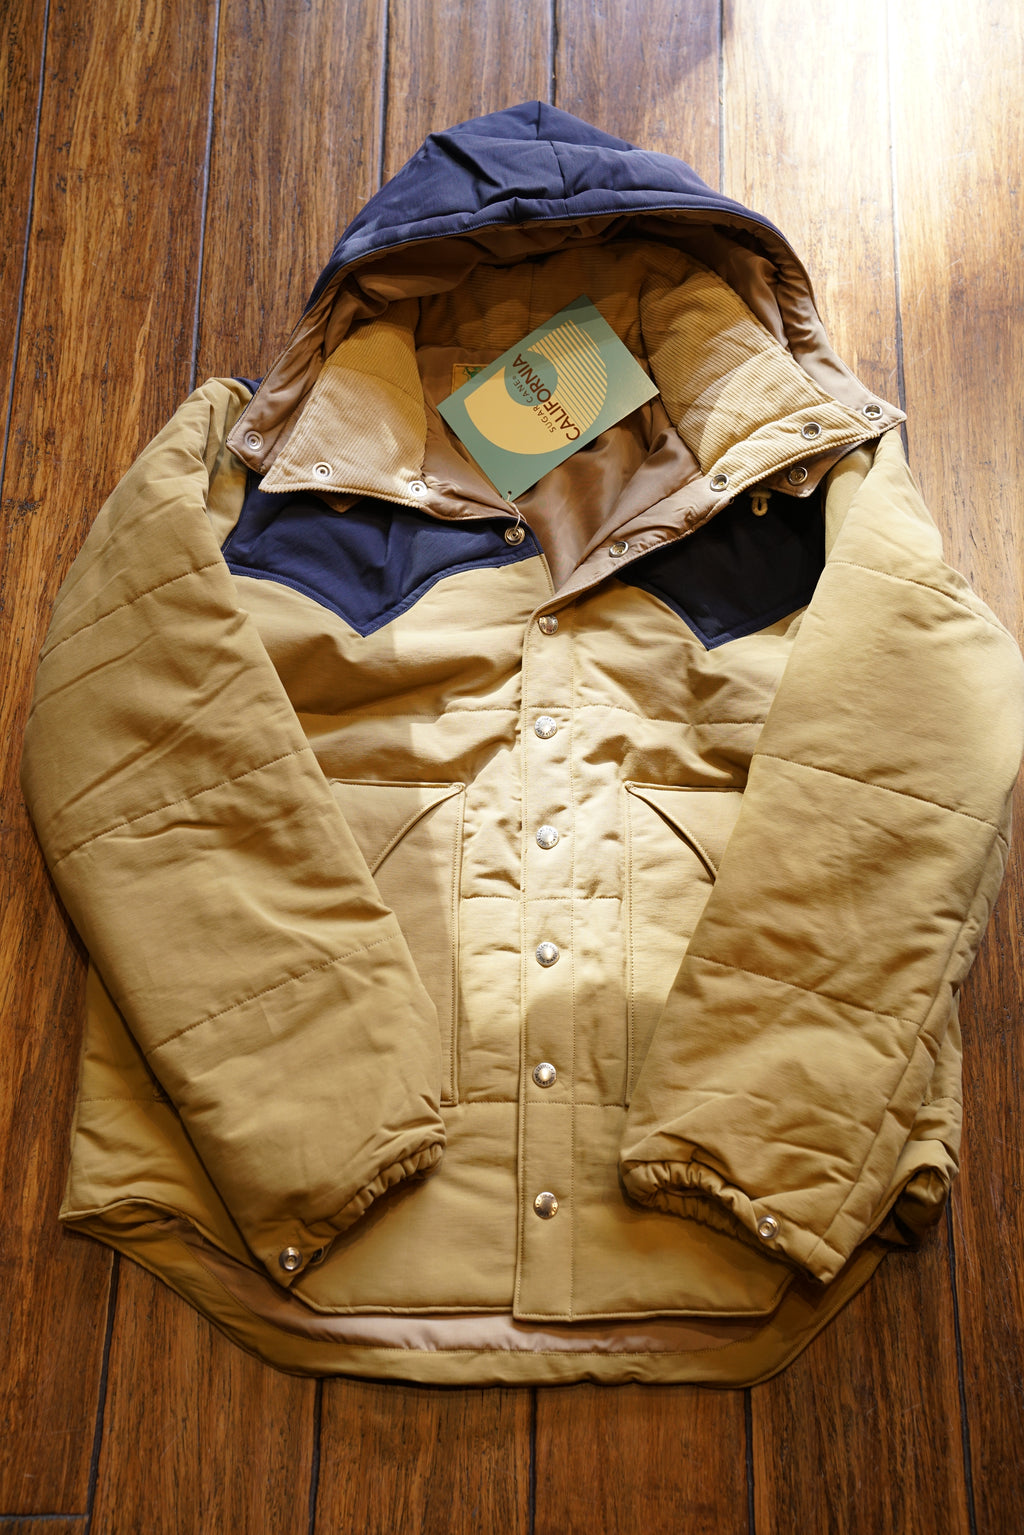 Sugarcane Padding jacket